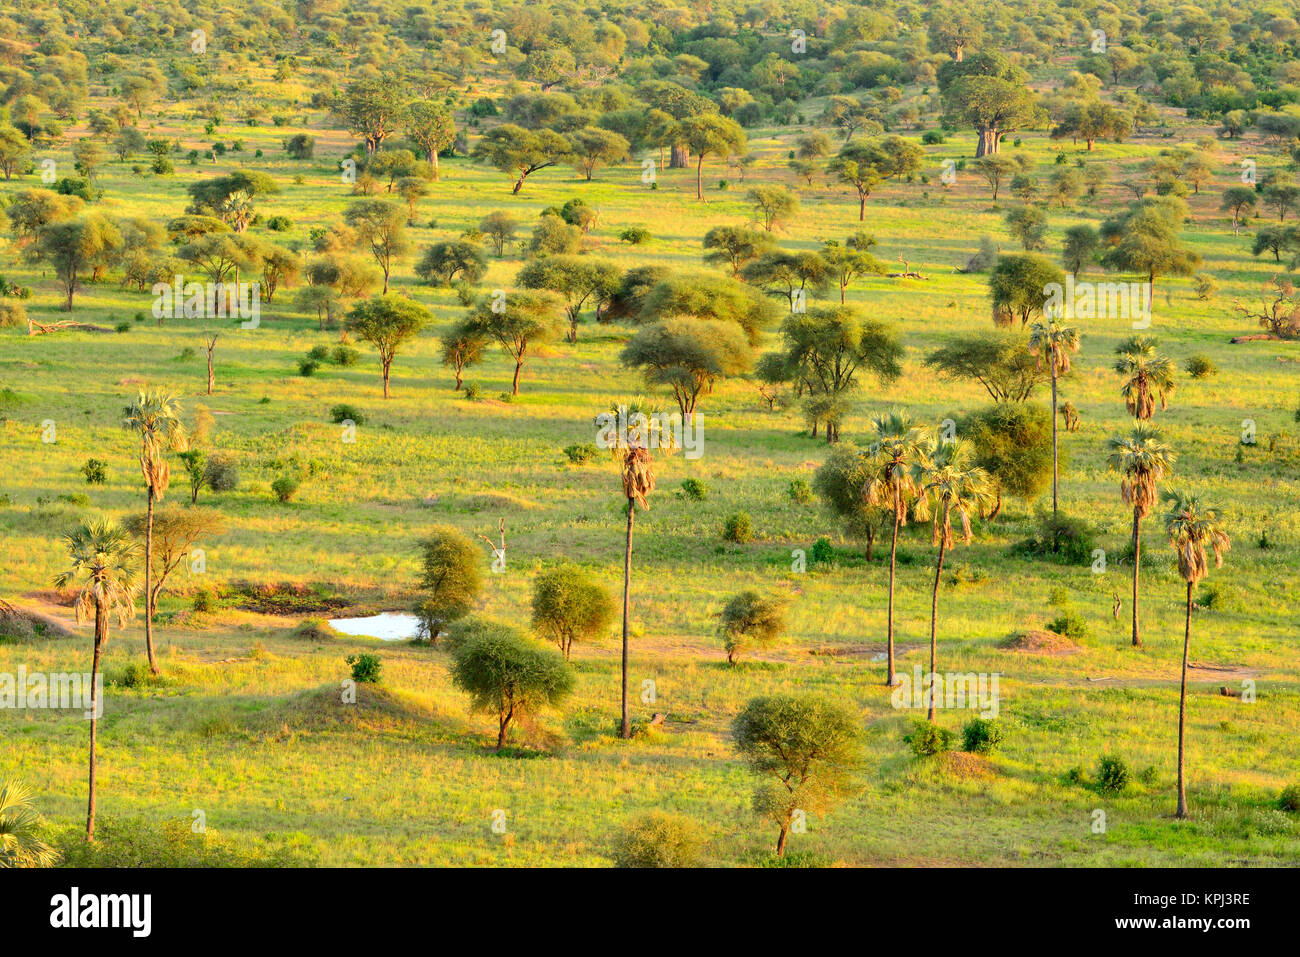 Tarangire national park in Tanzania is an undiscovered jewel with beautiful scenery along the Tarangire river. - Stock Image